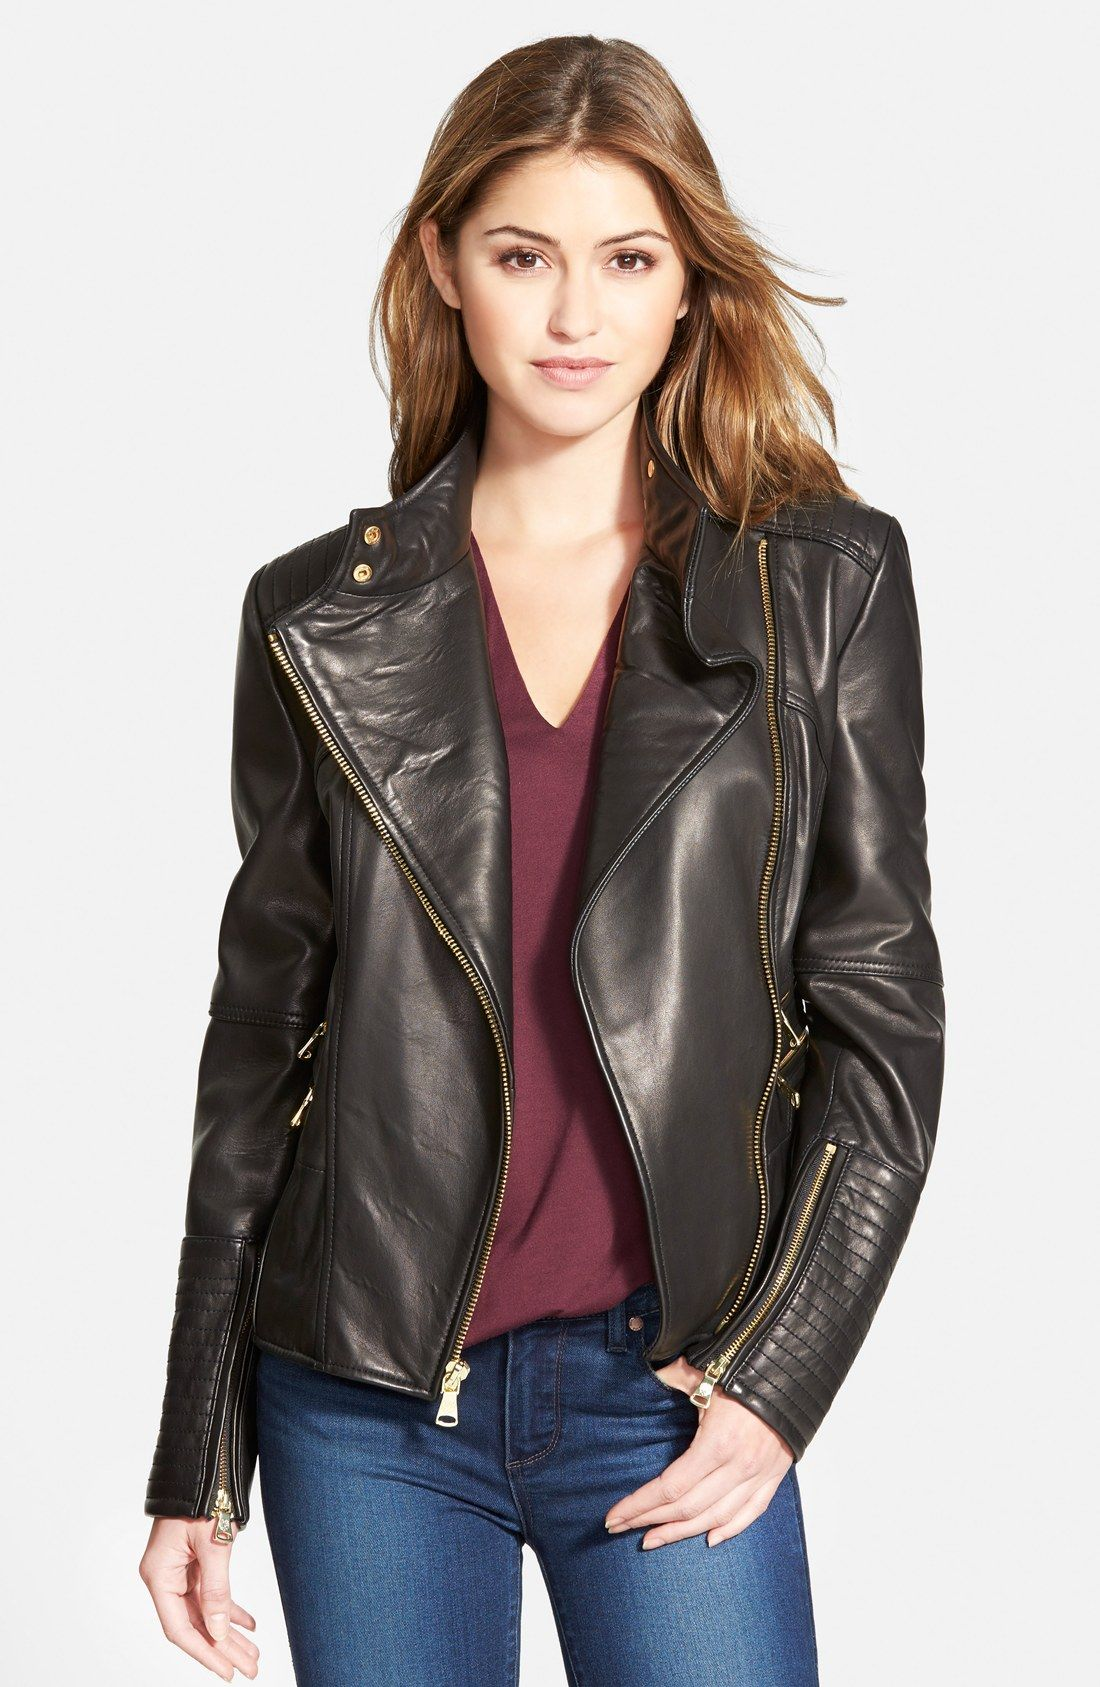 Vince Camuto Asymmetrical Leather Moto Jacket Online Only Nordstrom Clothes Leather Jackets Women Coats For Women [ 1687 x 1100 Pixel ]